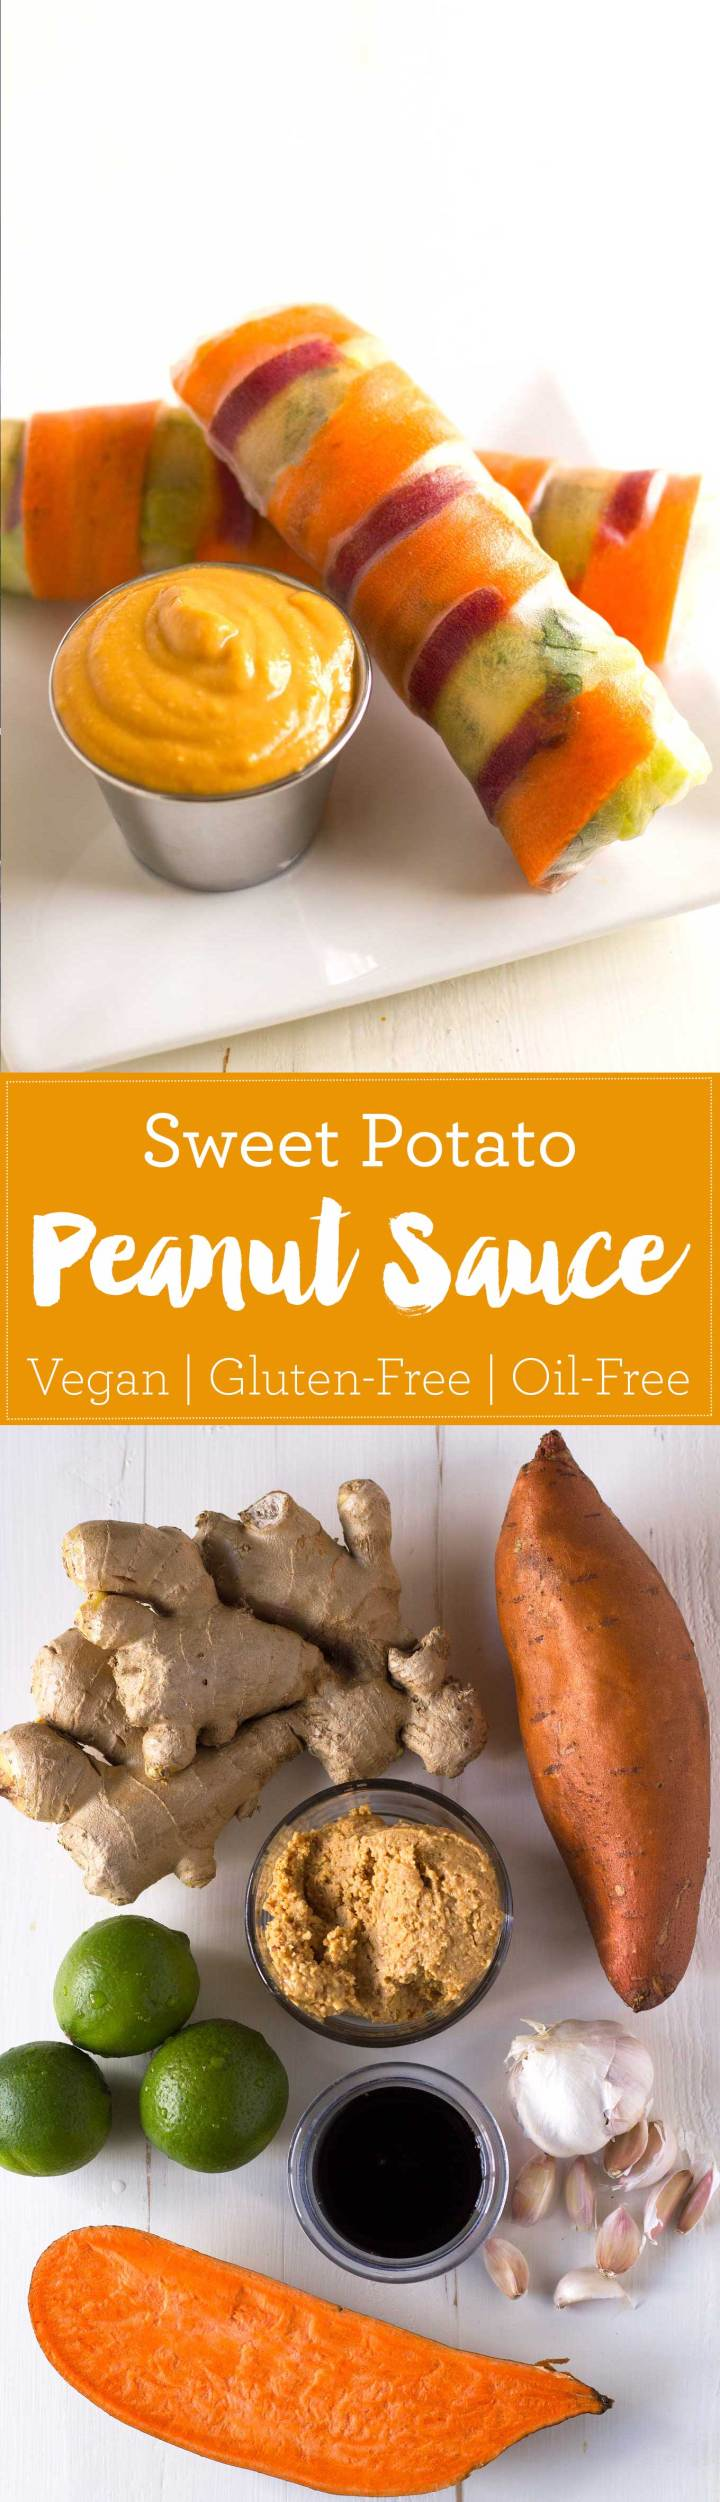 Sneak some fiber and veggies into a sweet and savory sweet potato peanut sauce! Oil-free, vegan, gluten-free, full of flavor! | https://passtheplants.com